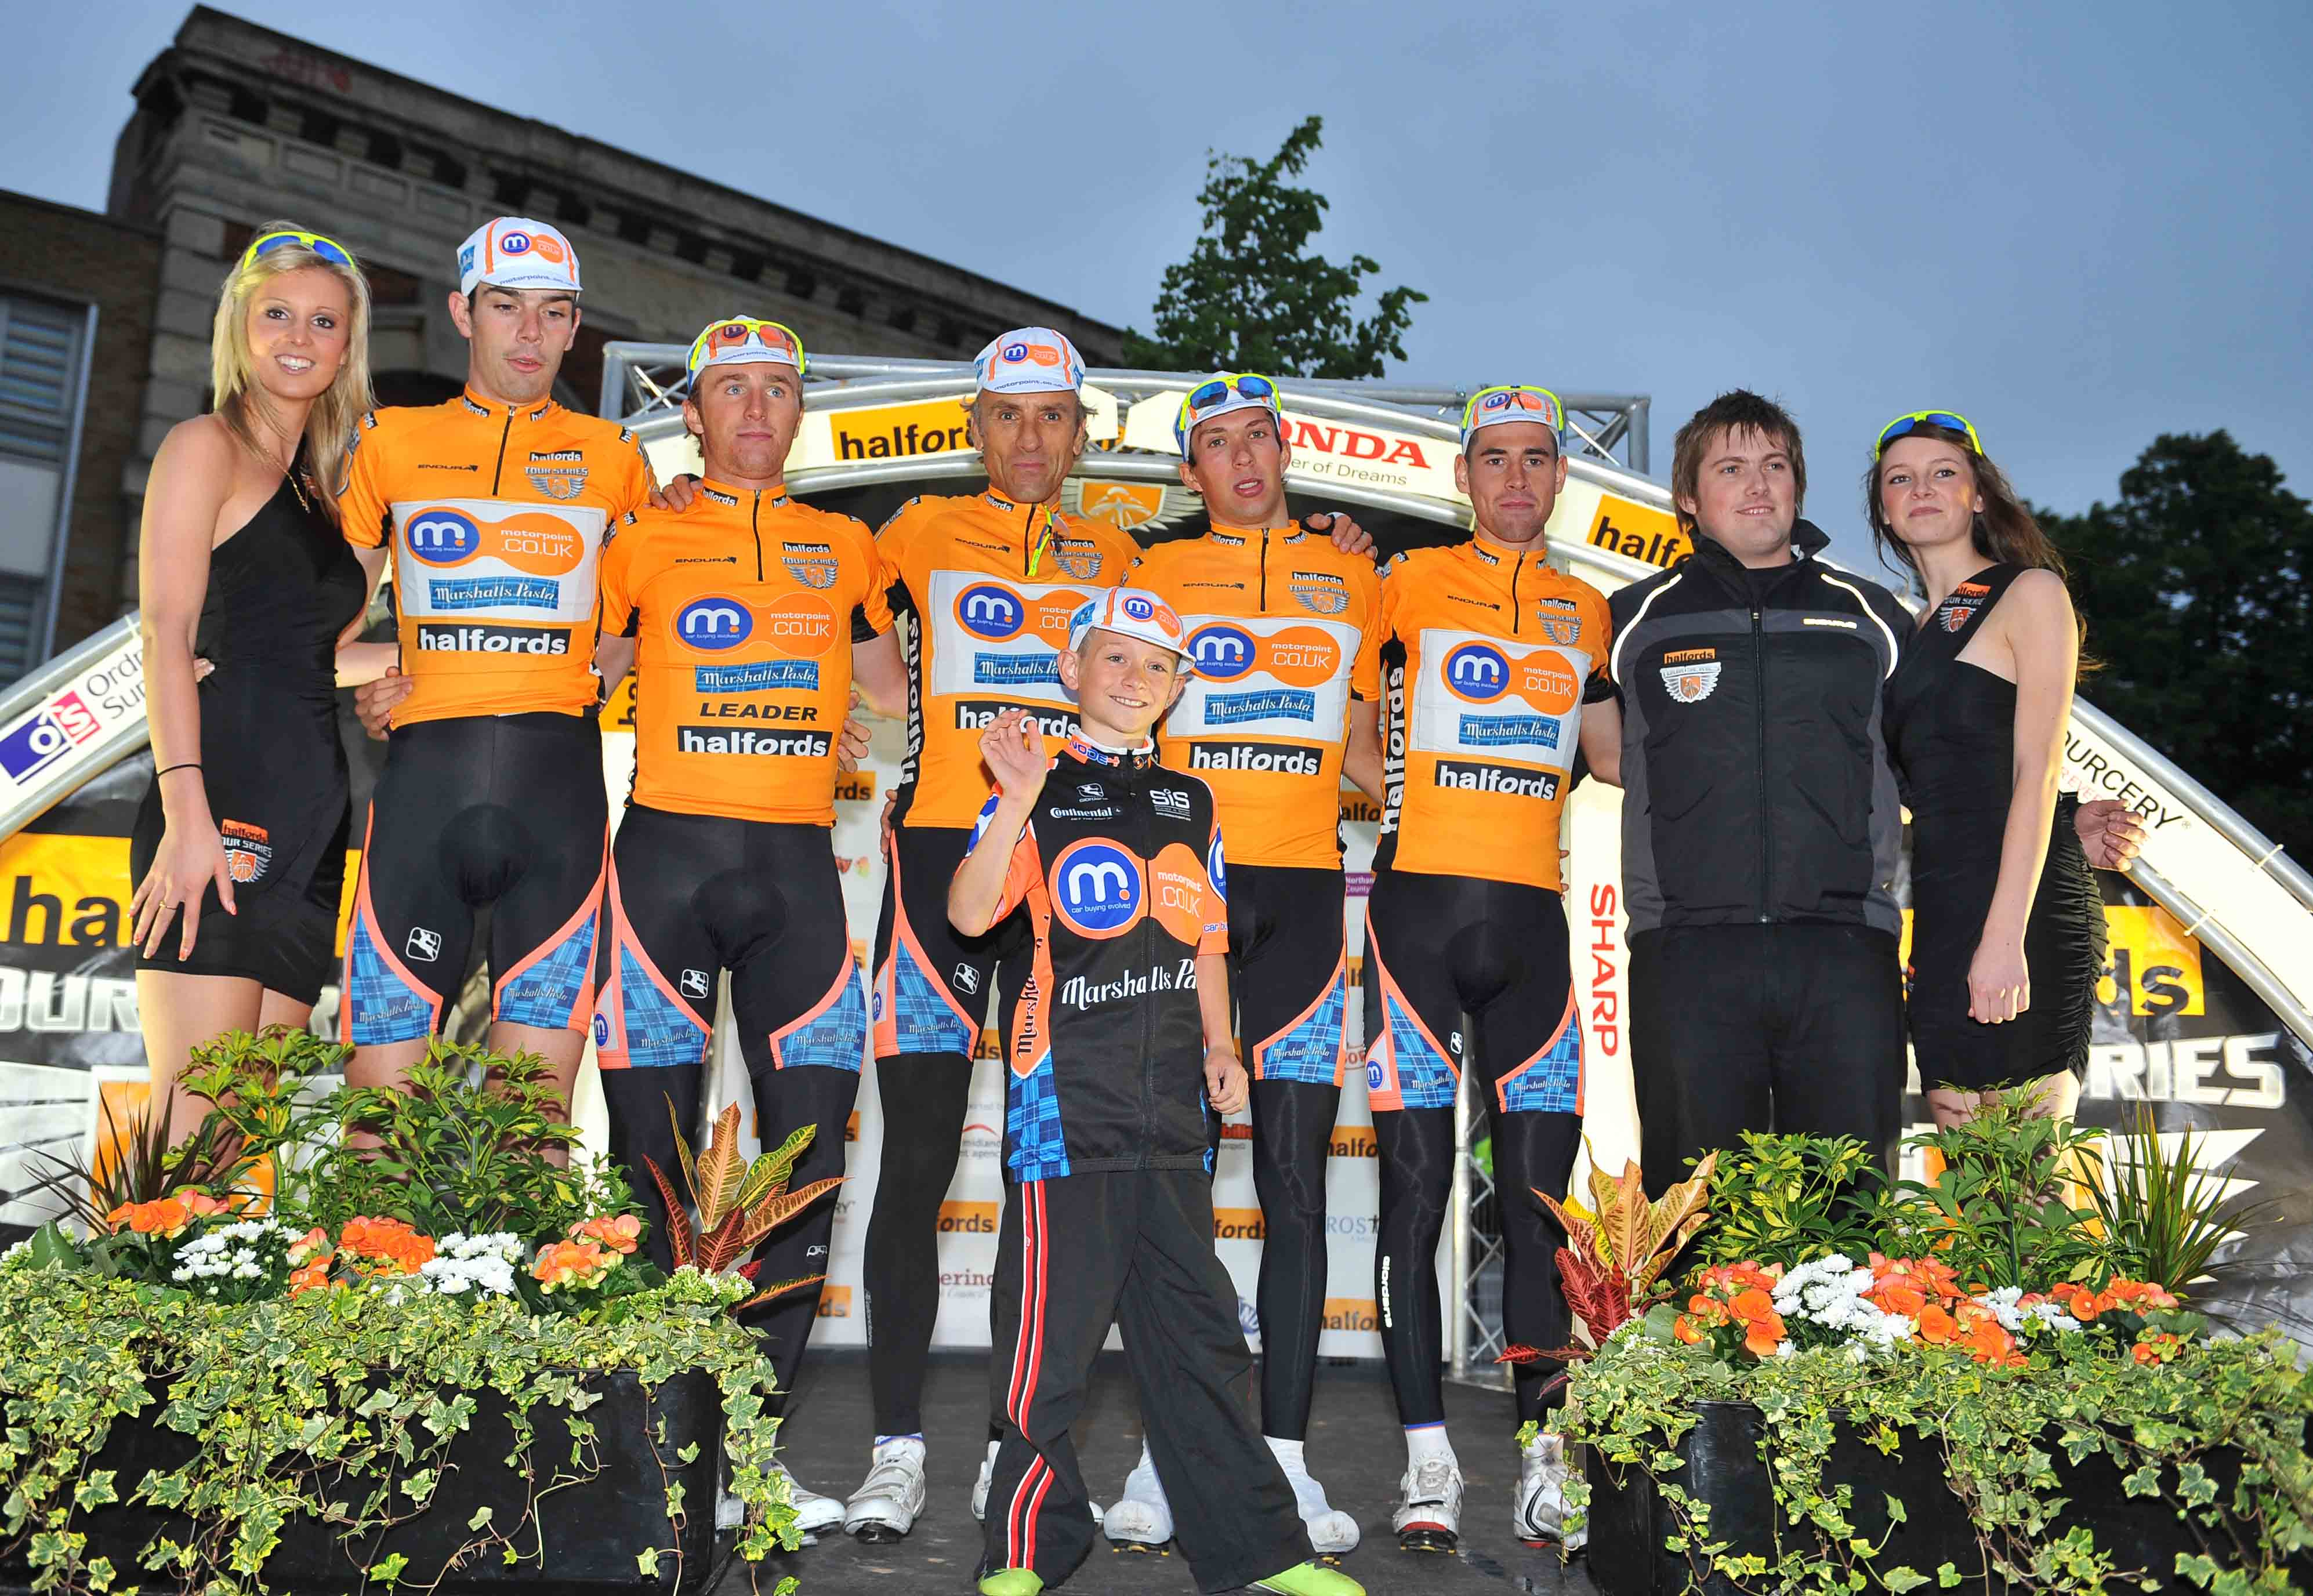 Motorpoint win in Kettering